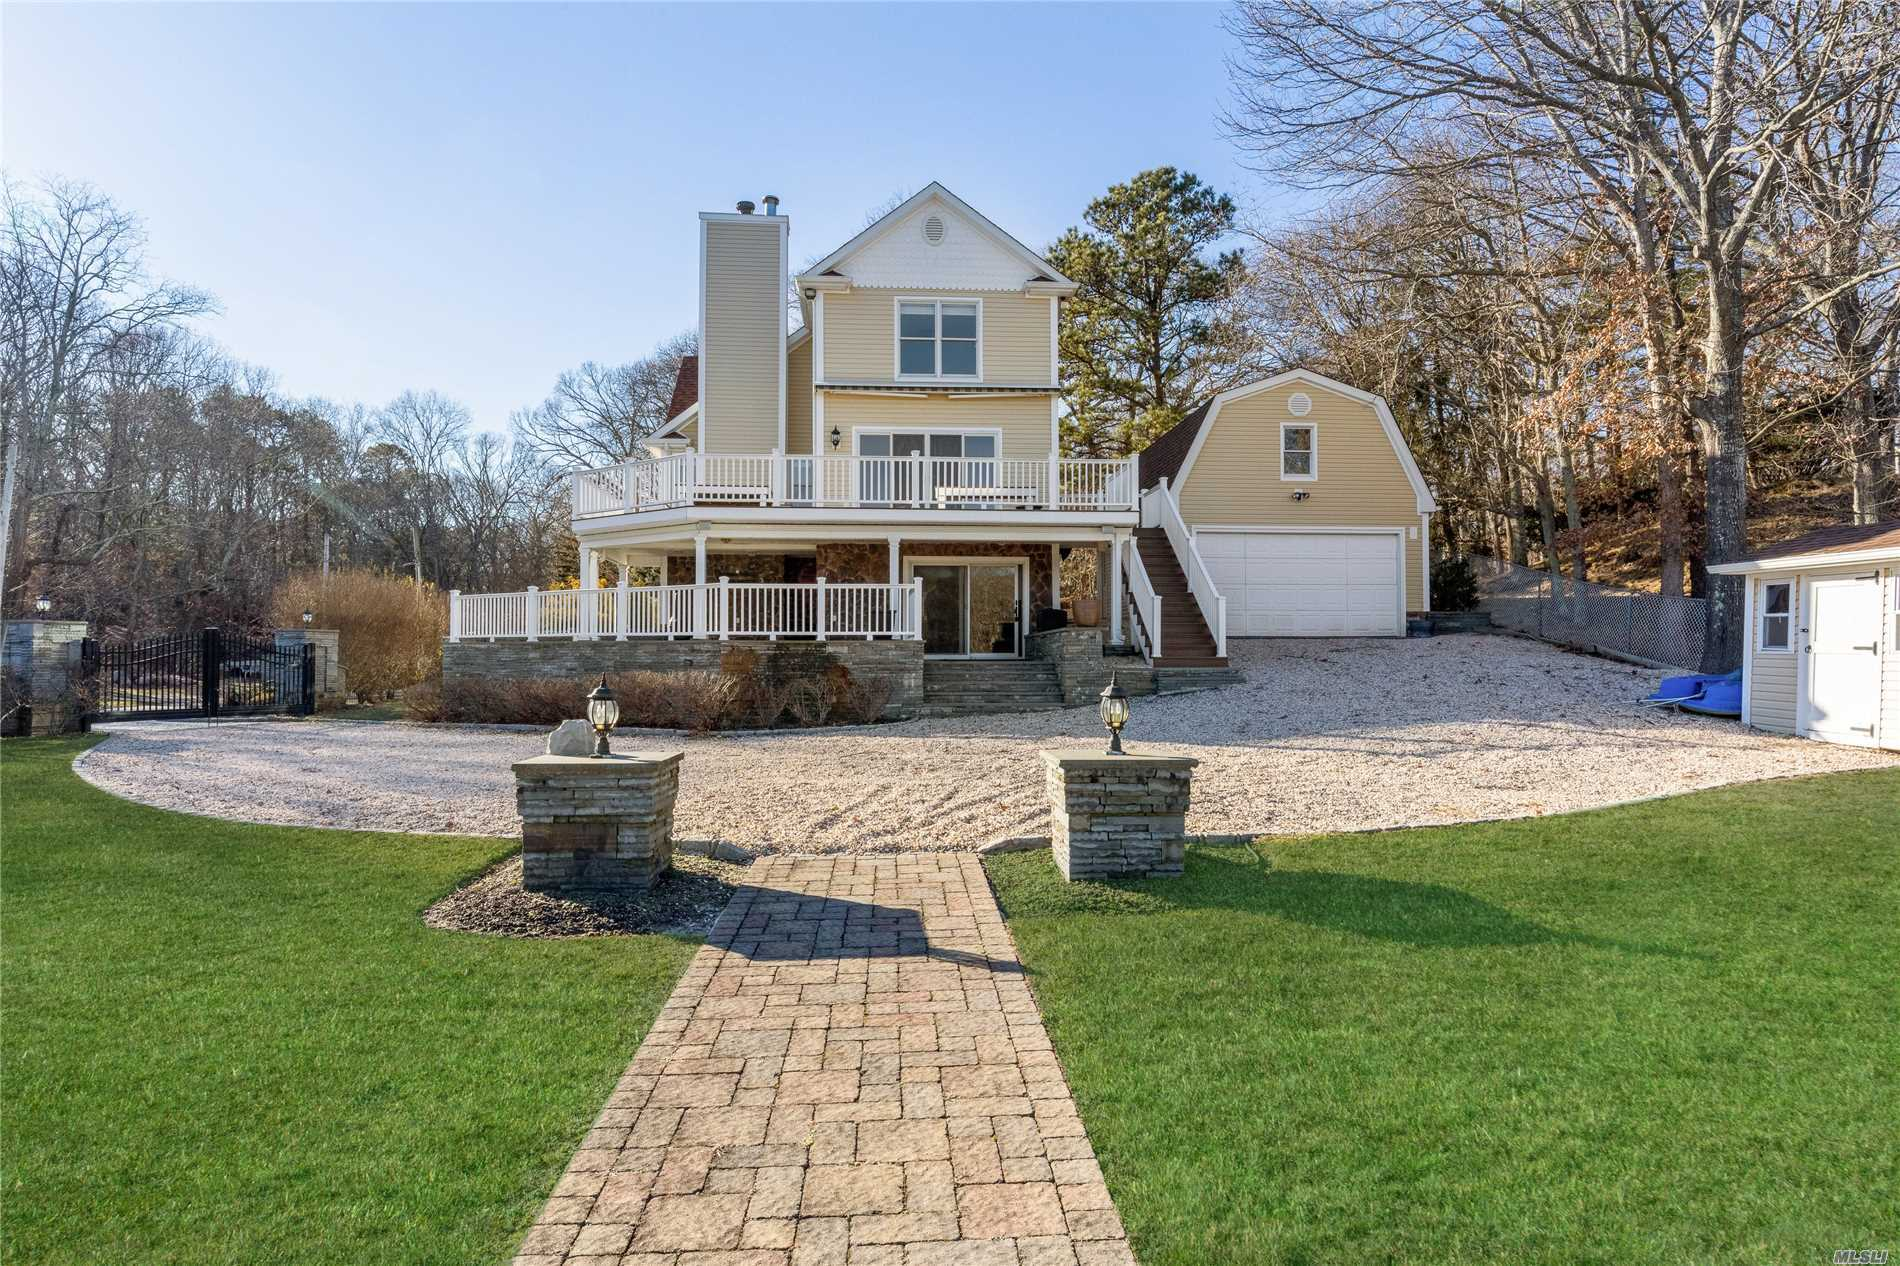 Spectacular Water Views From This Totally Renovated Country Home Featuring Open Layout, Master Bedroom Suite, 2 Guest Bedrooms, Gourmet Kitchen, Plenty Of Outdoor Entertaining Spaces, Deep Water Dock That Can Hold Several Boats, And 2 Car Garage.